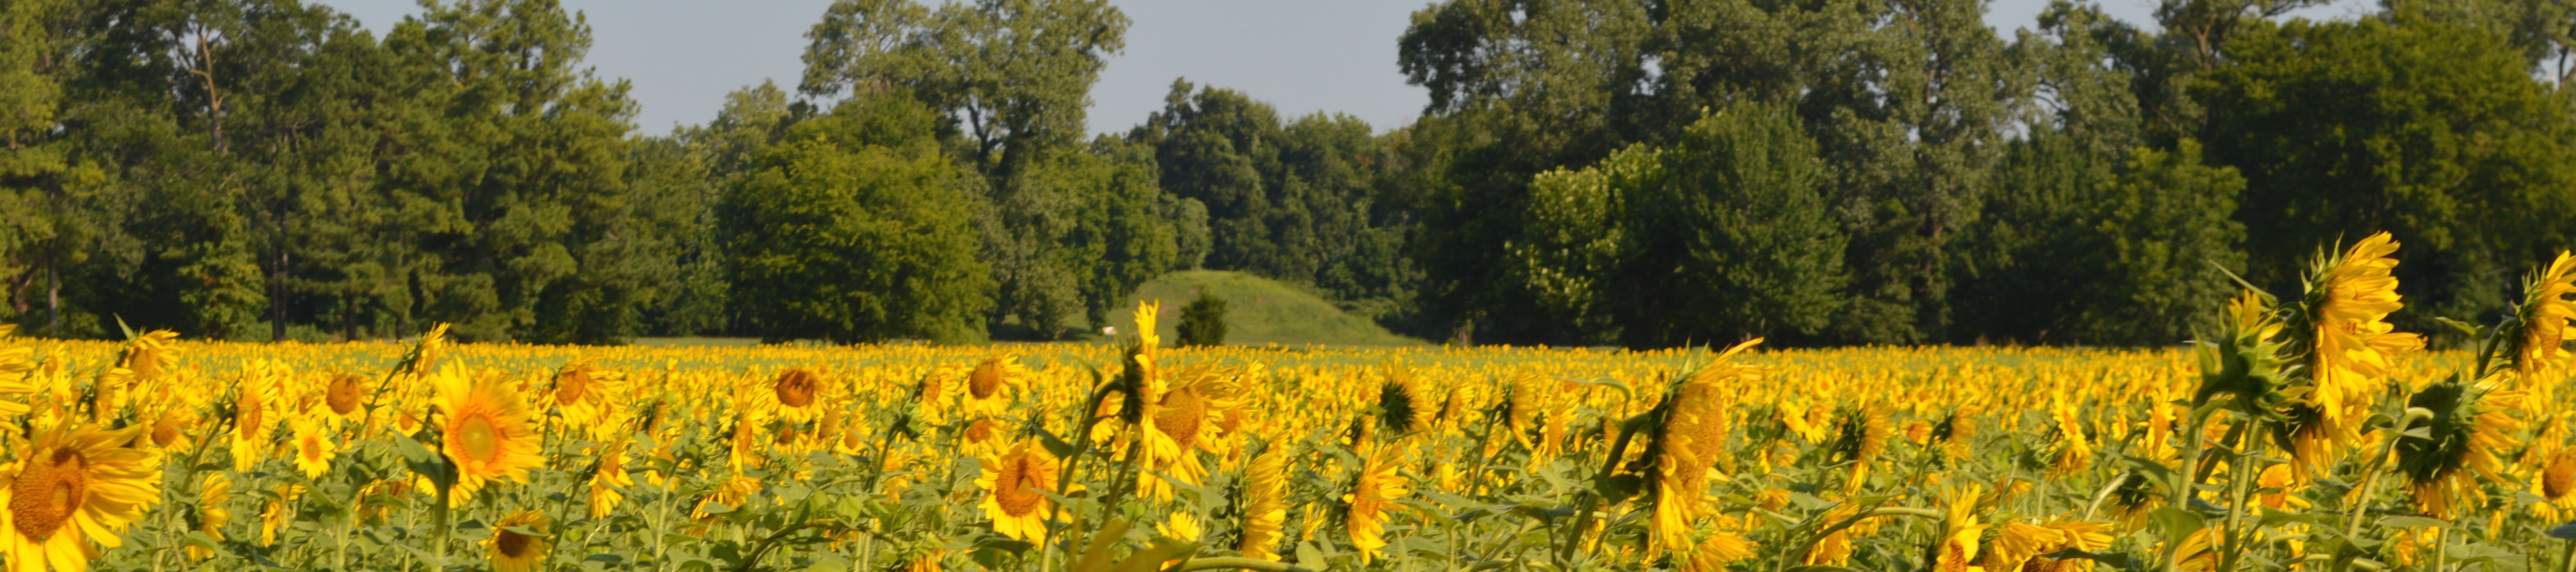 Sunflowers growing in front of the mound at Parkin Archeological State Park. Photograph by Jodi A. Barnes, 2016.